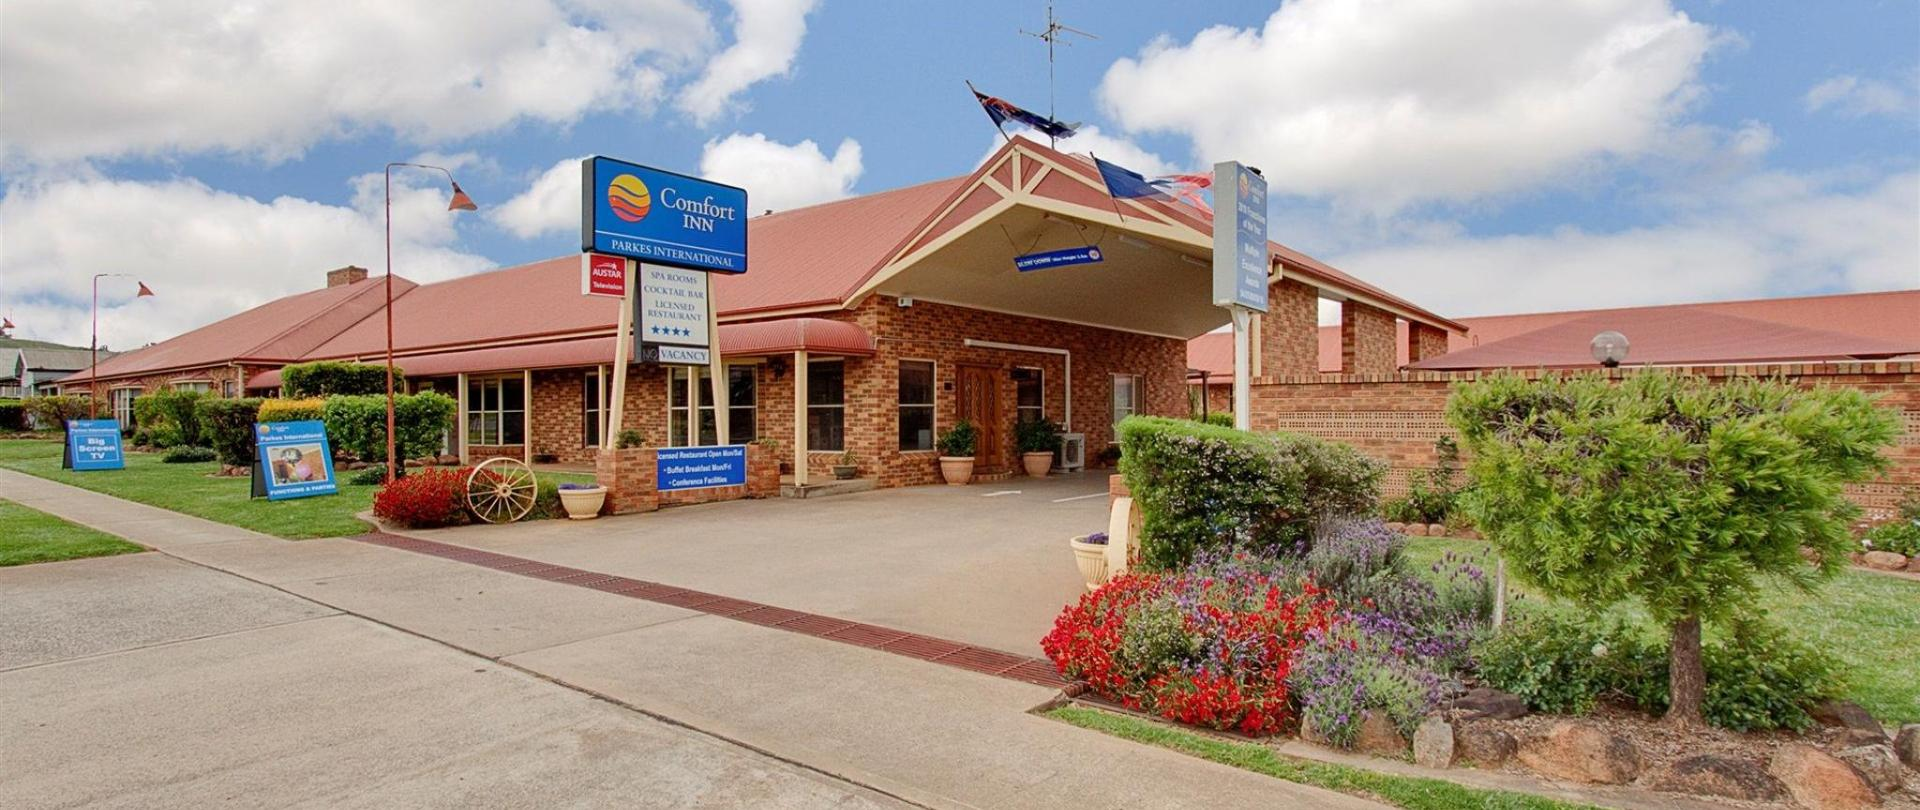 comfort-inn-parkes-international.jpg